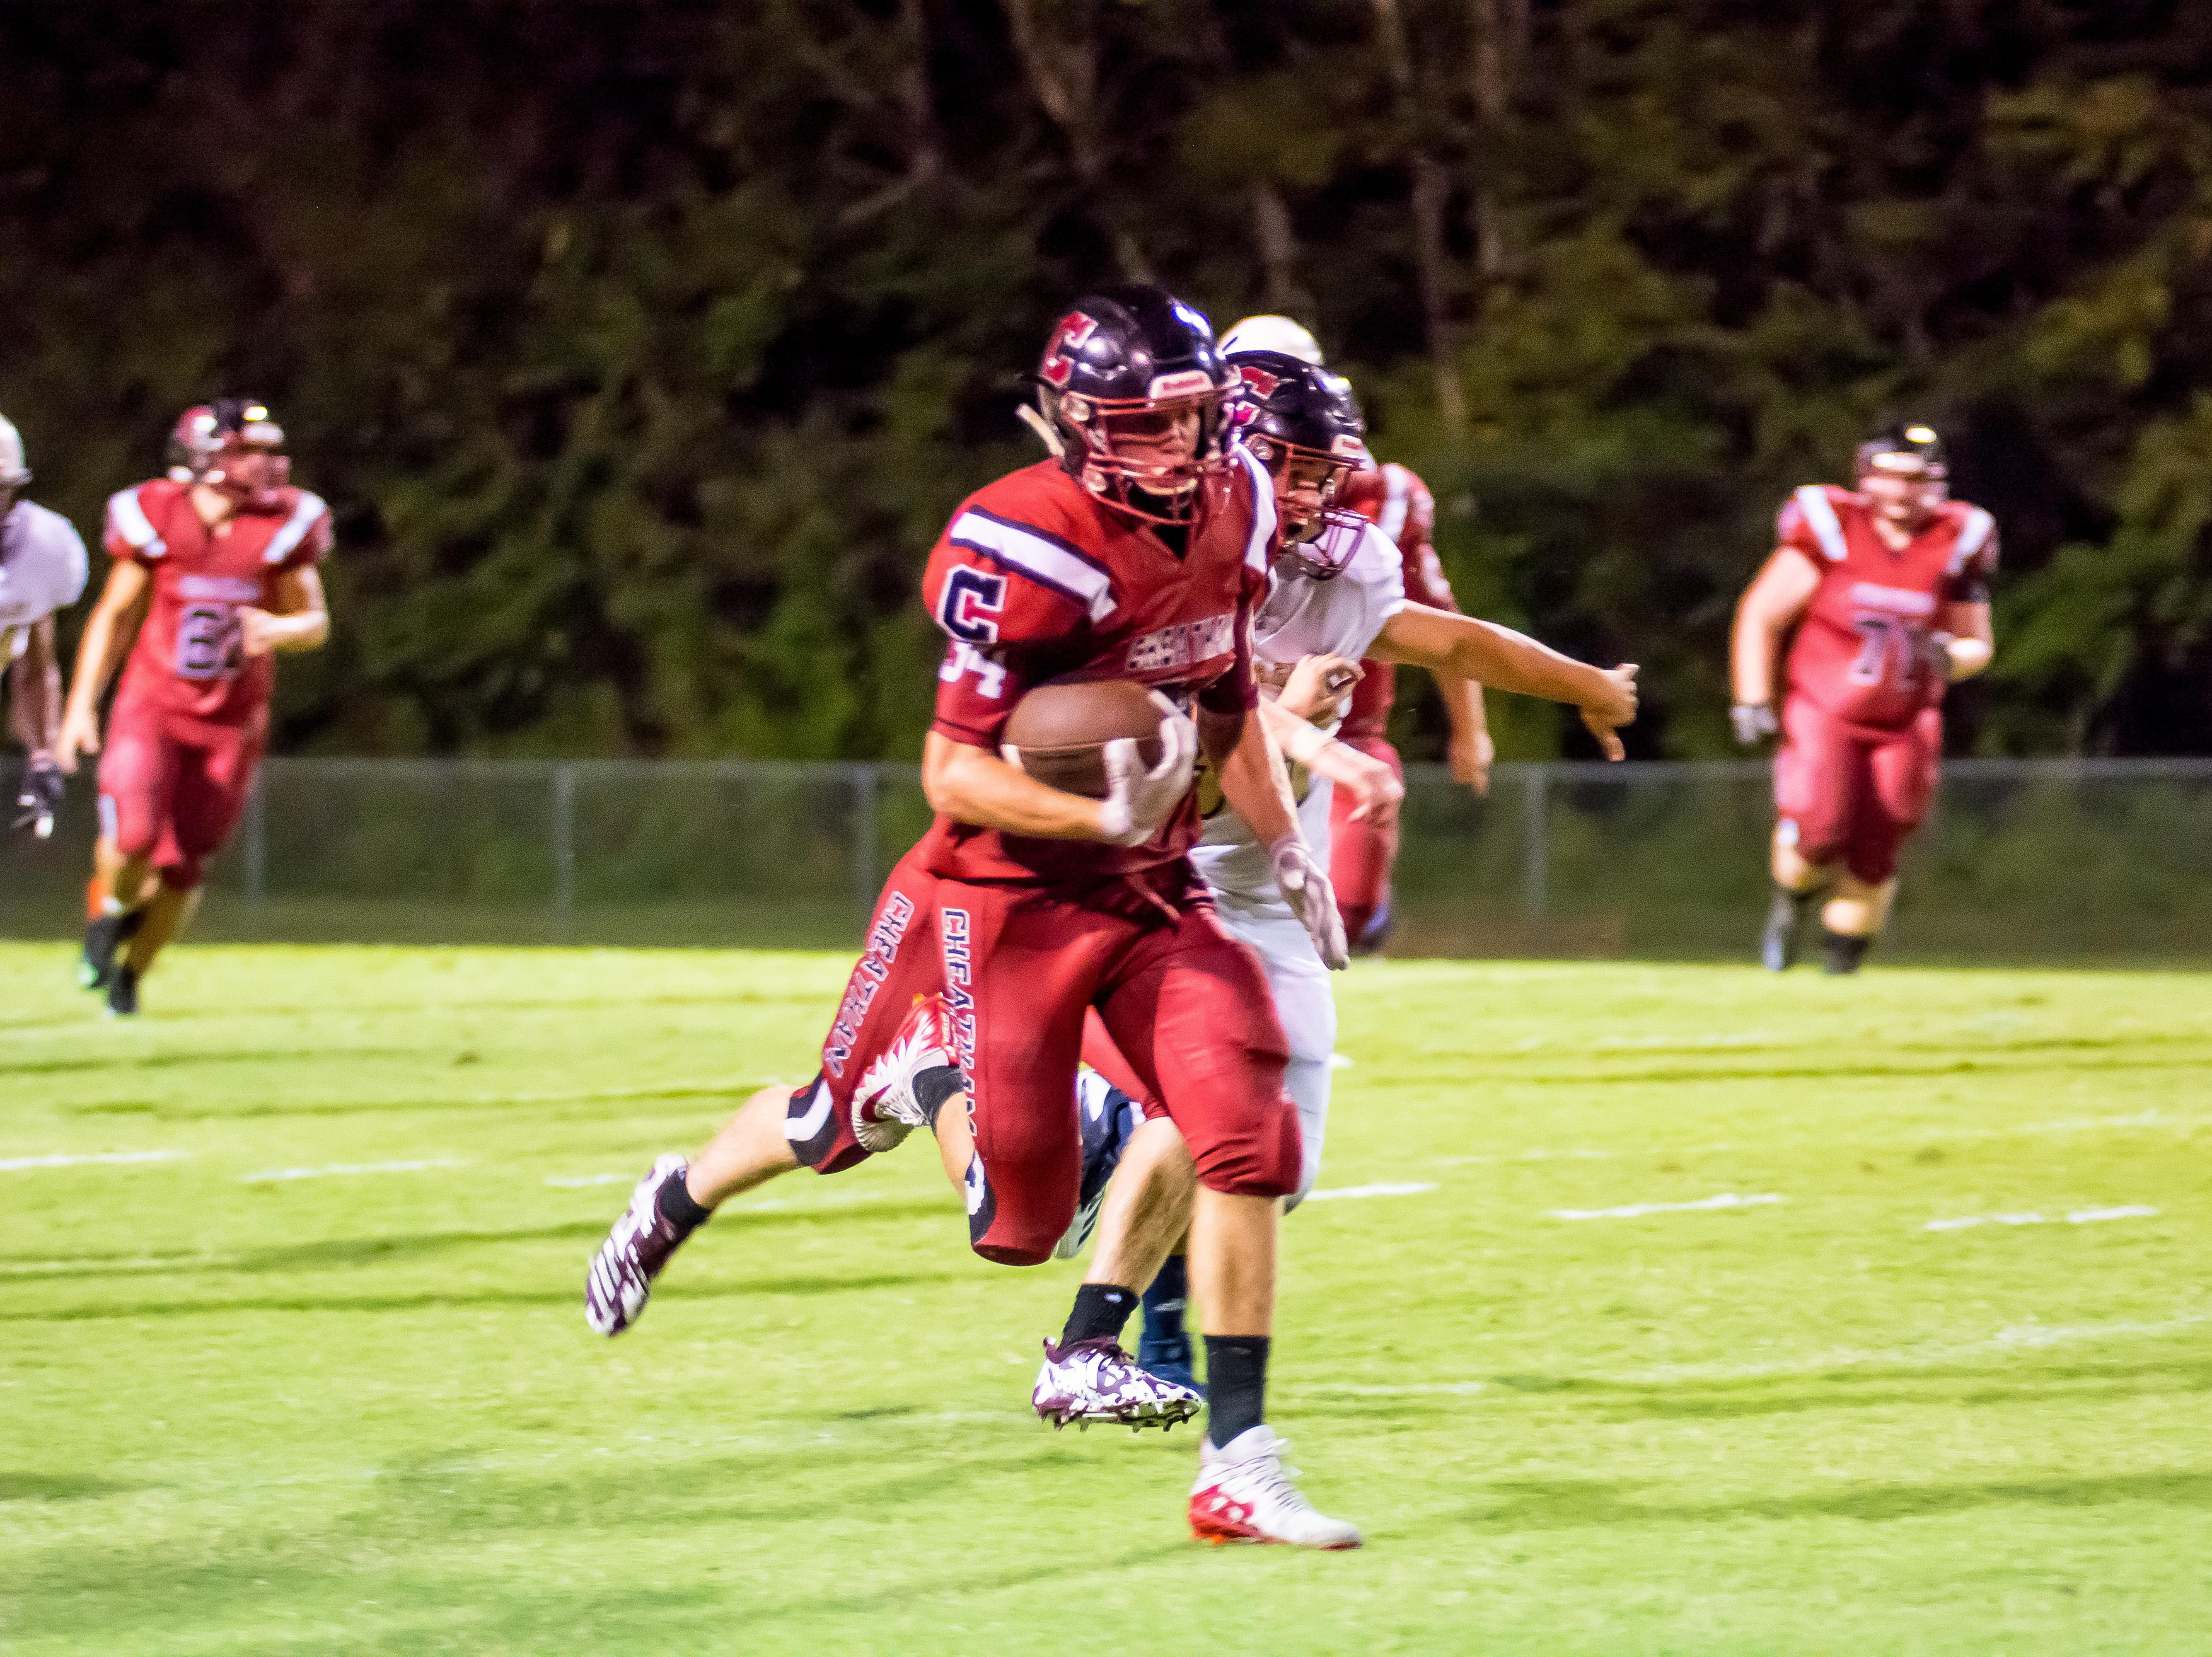 Cheatham Cub senior Walker Bunce had a good night as well including this 60-plus yard run for a Cub TD to tie the game 7-7.